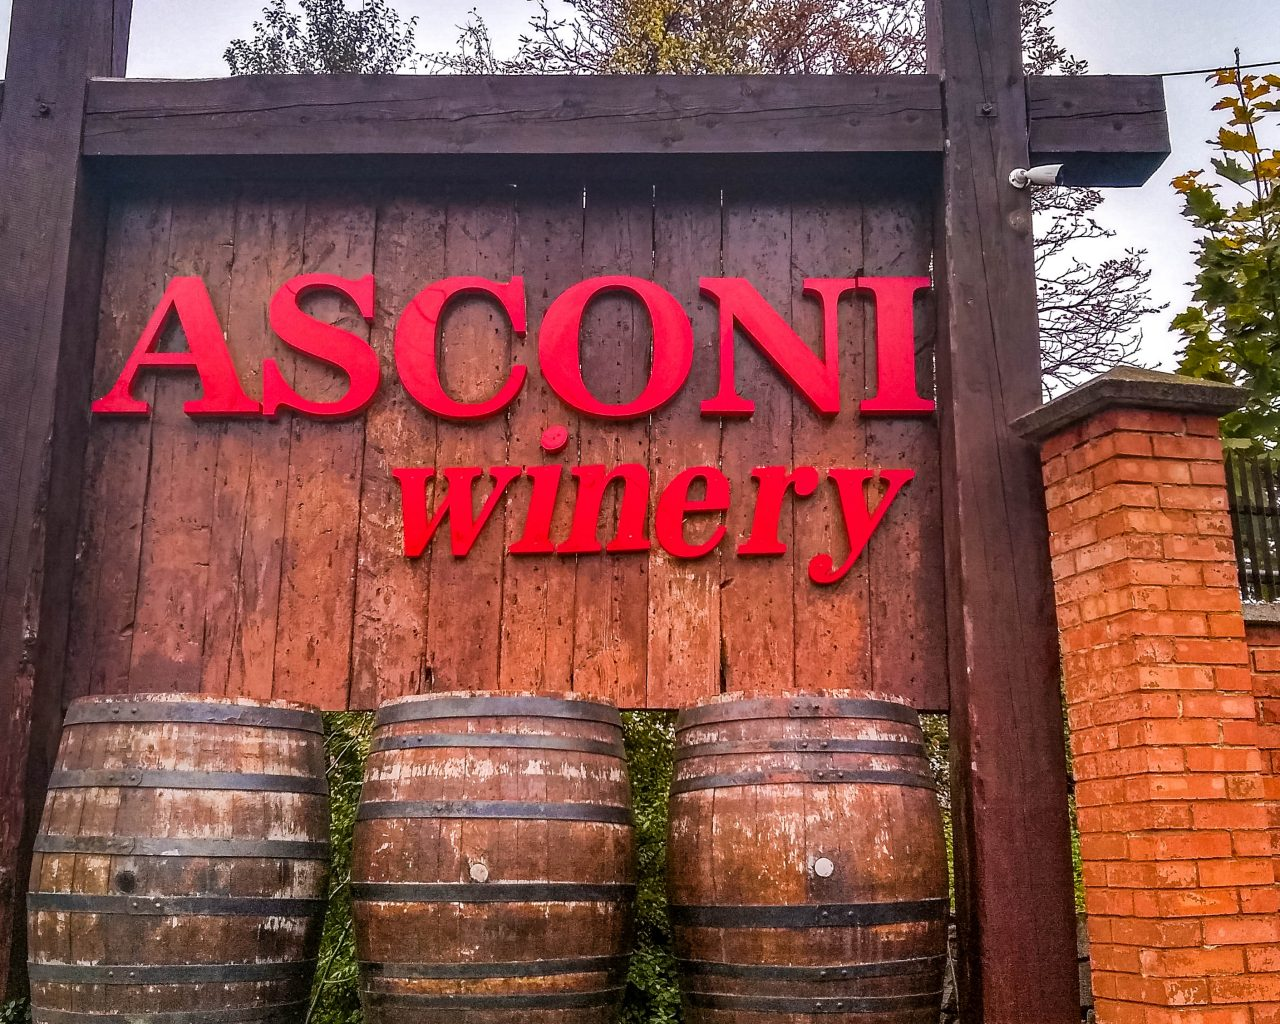 Asconi-winery-bord